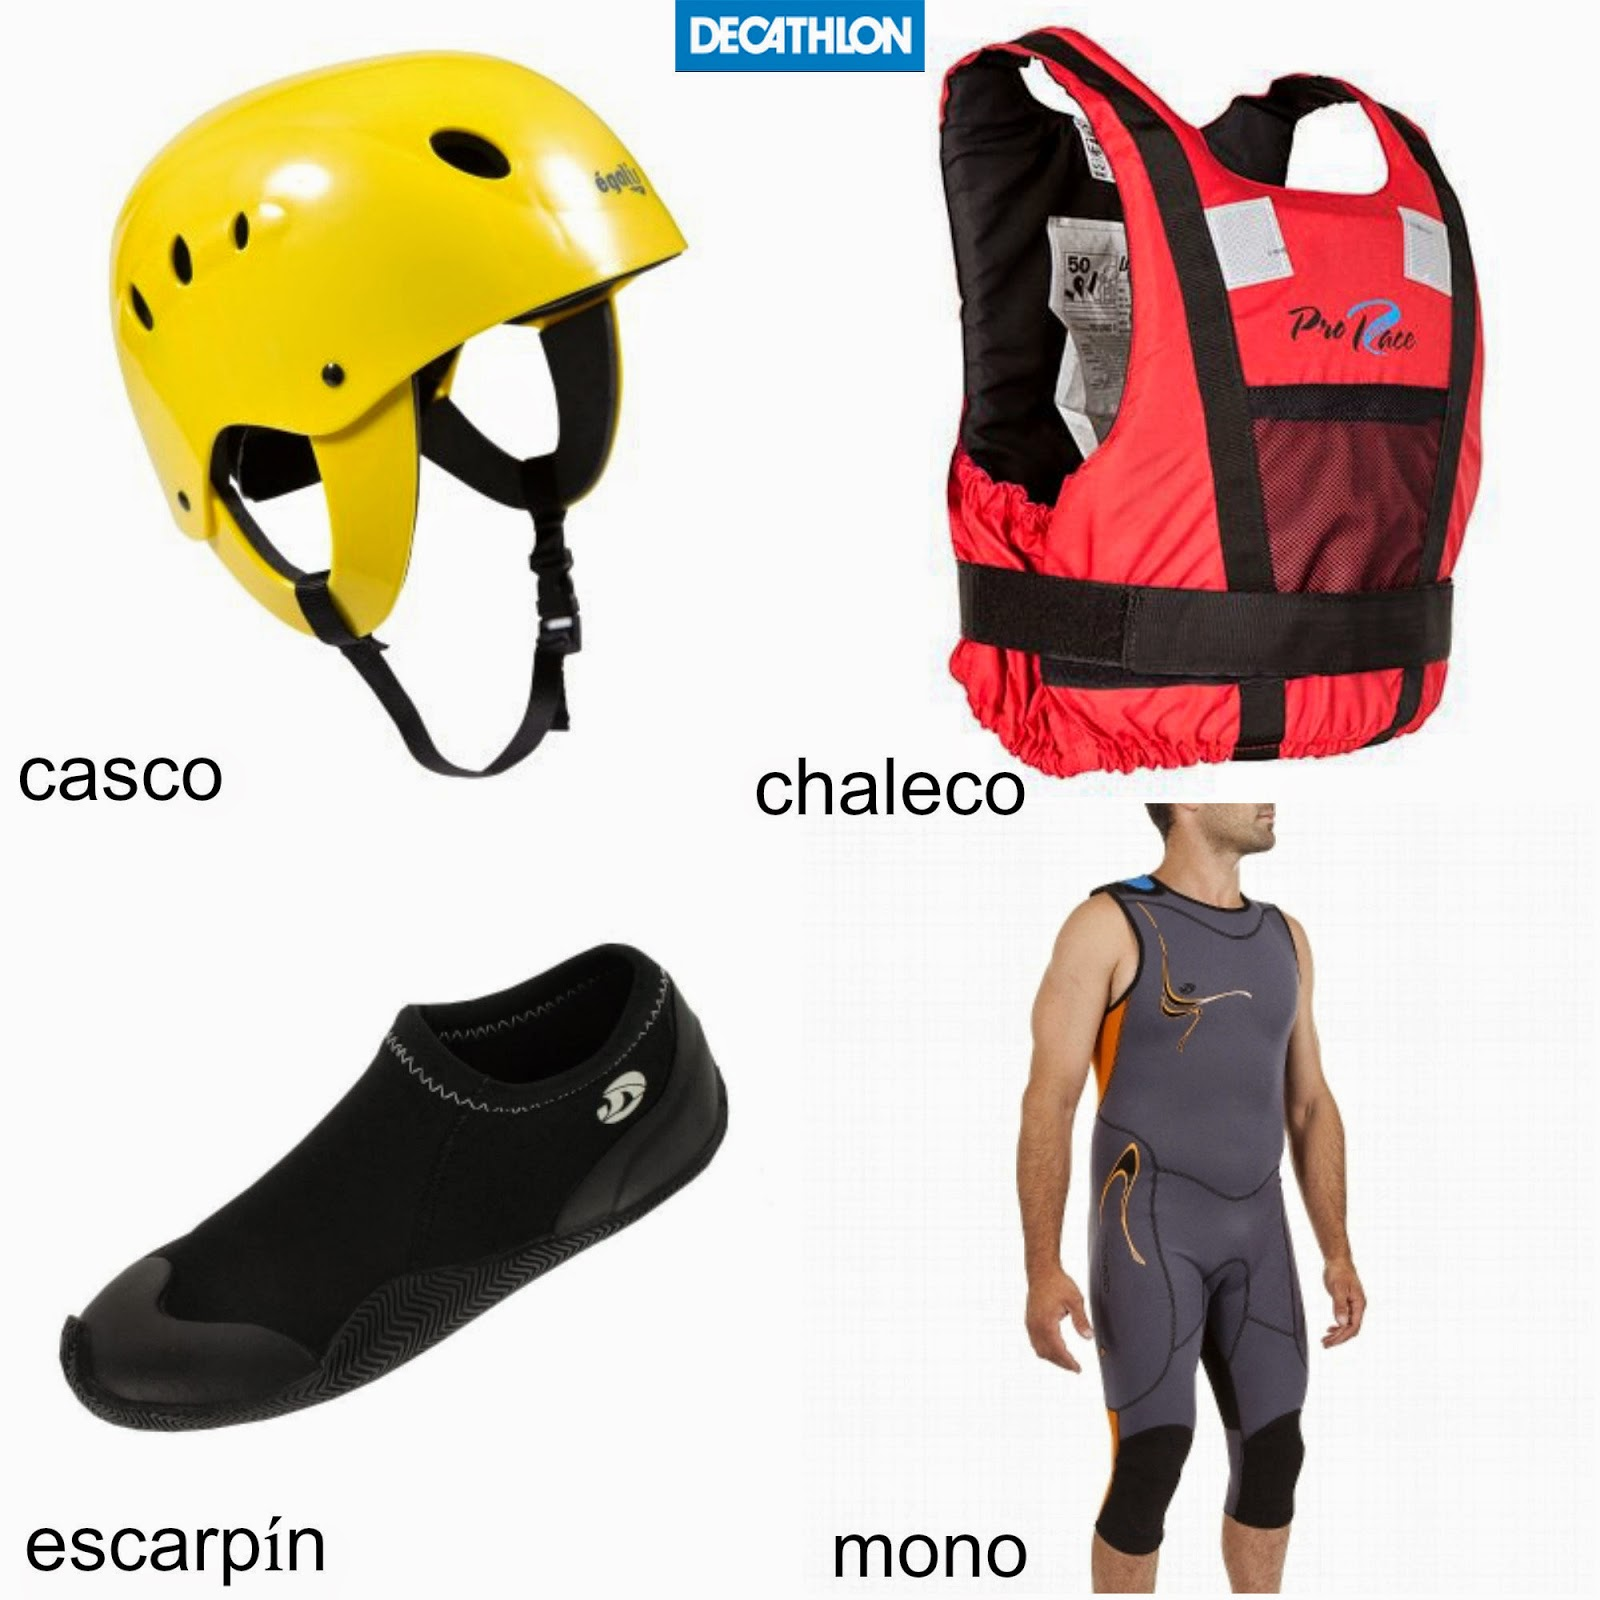 Decathlon Kayak Deporte